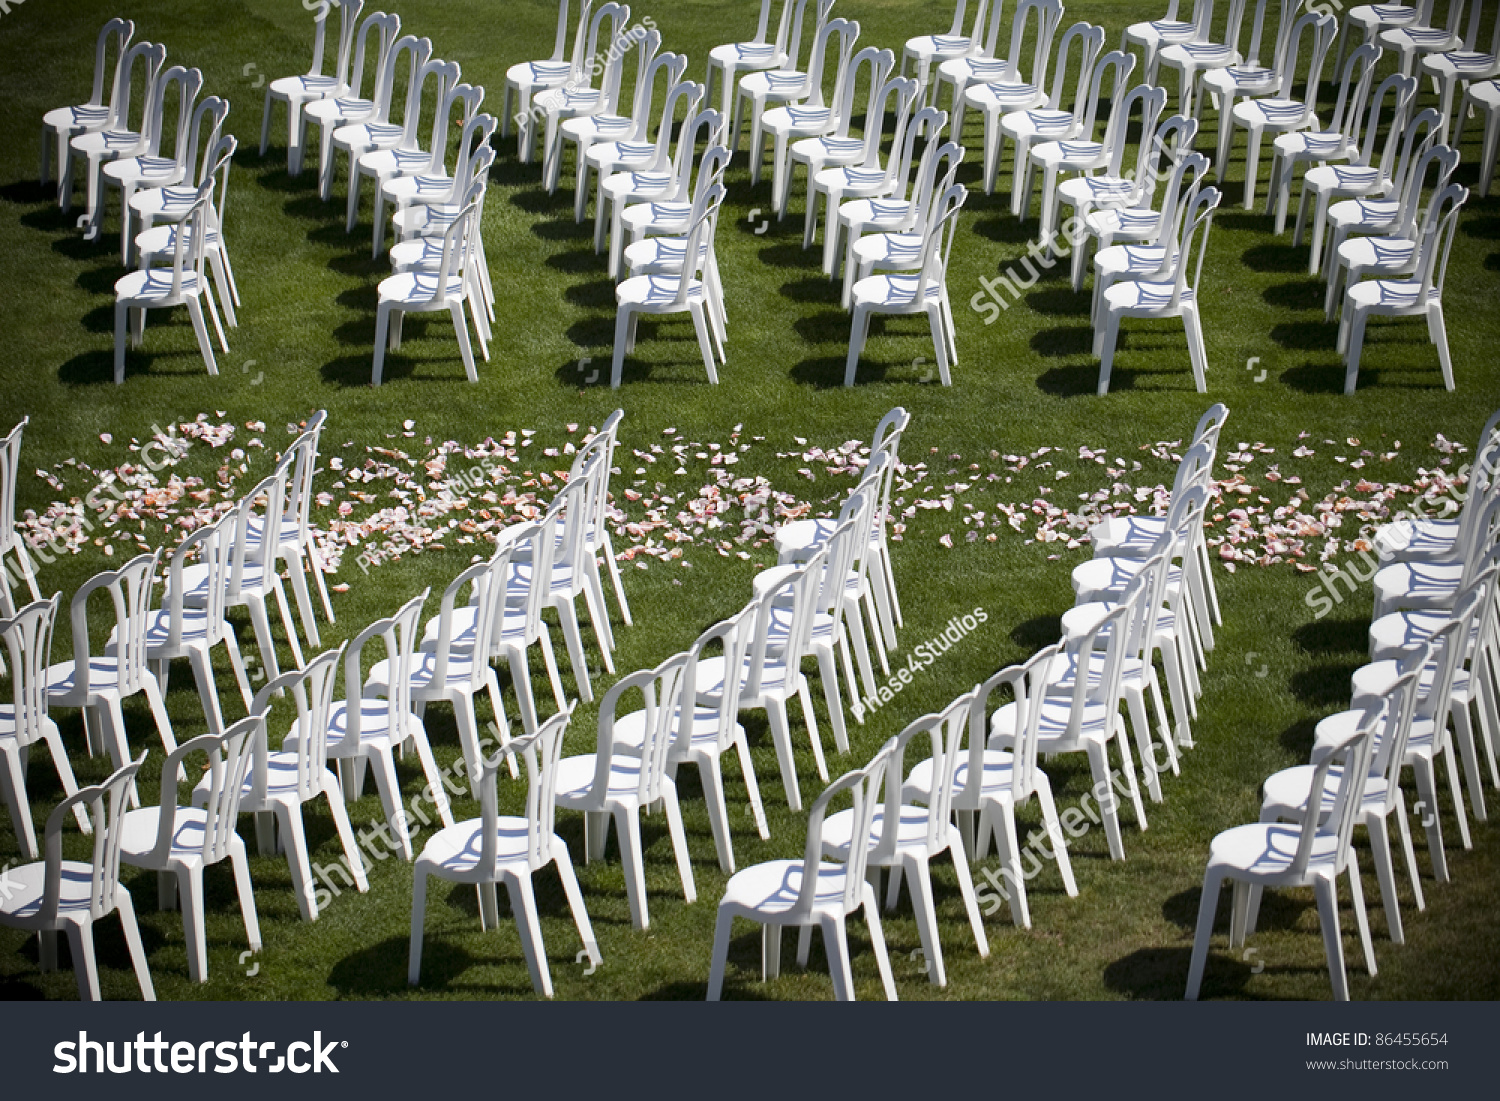 Wedding ceremony chair - Wedding Chairs Set Up Before The Ceremony Preview Save To A Lightbox